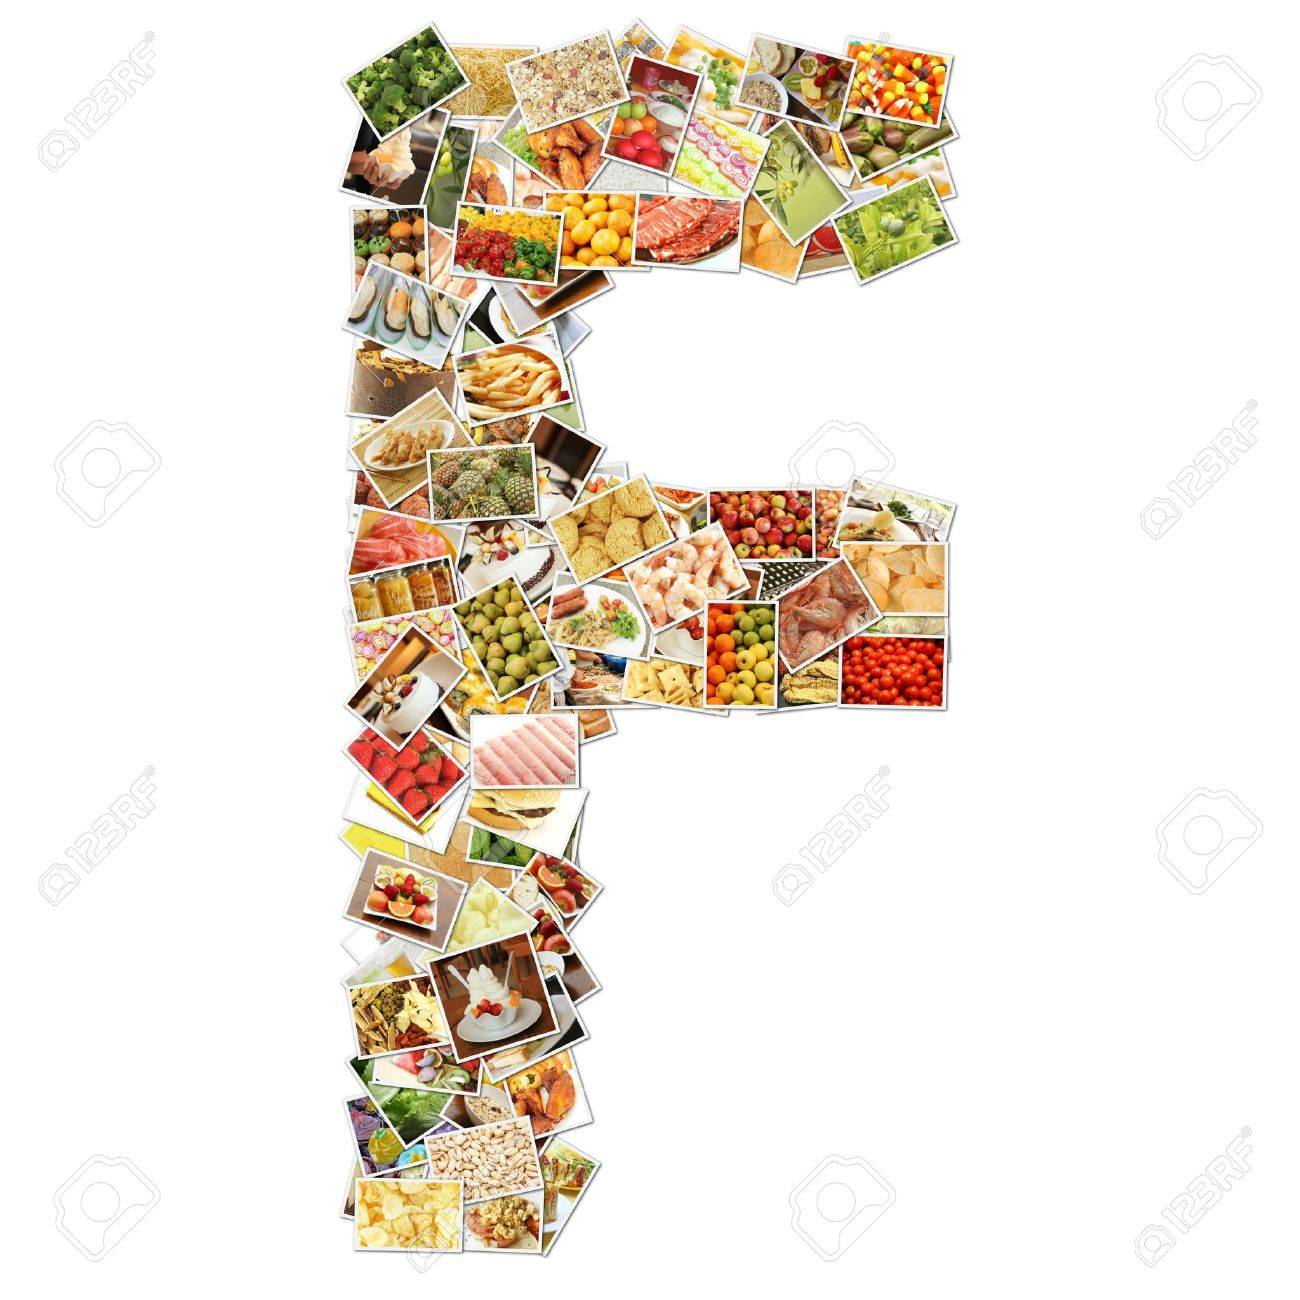 letter f food collage concept art stock photo picture and letter f food collage concept art stock photo 9691835